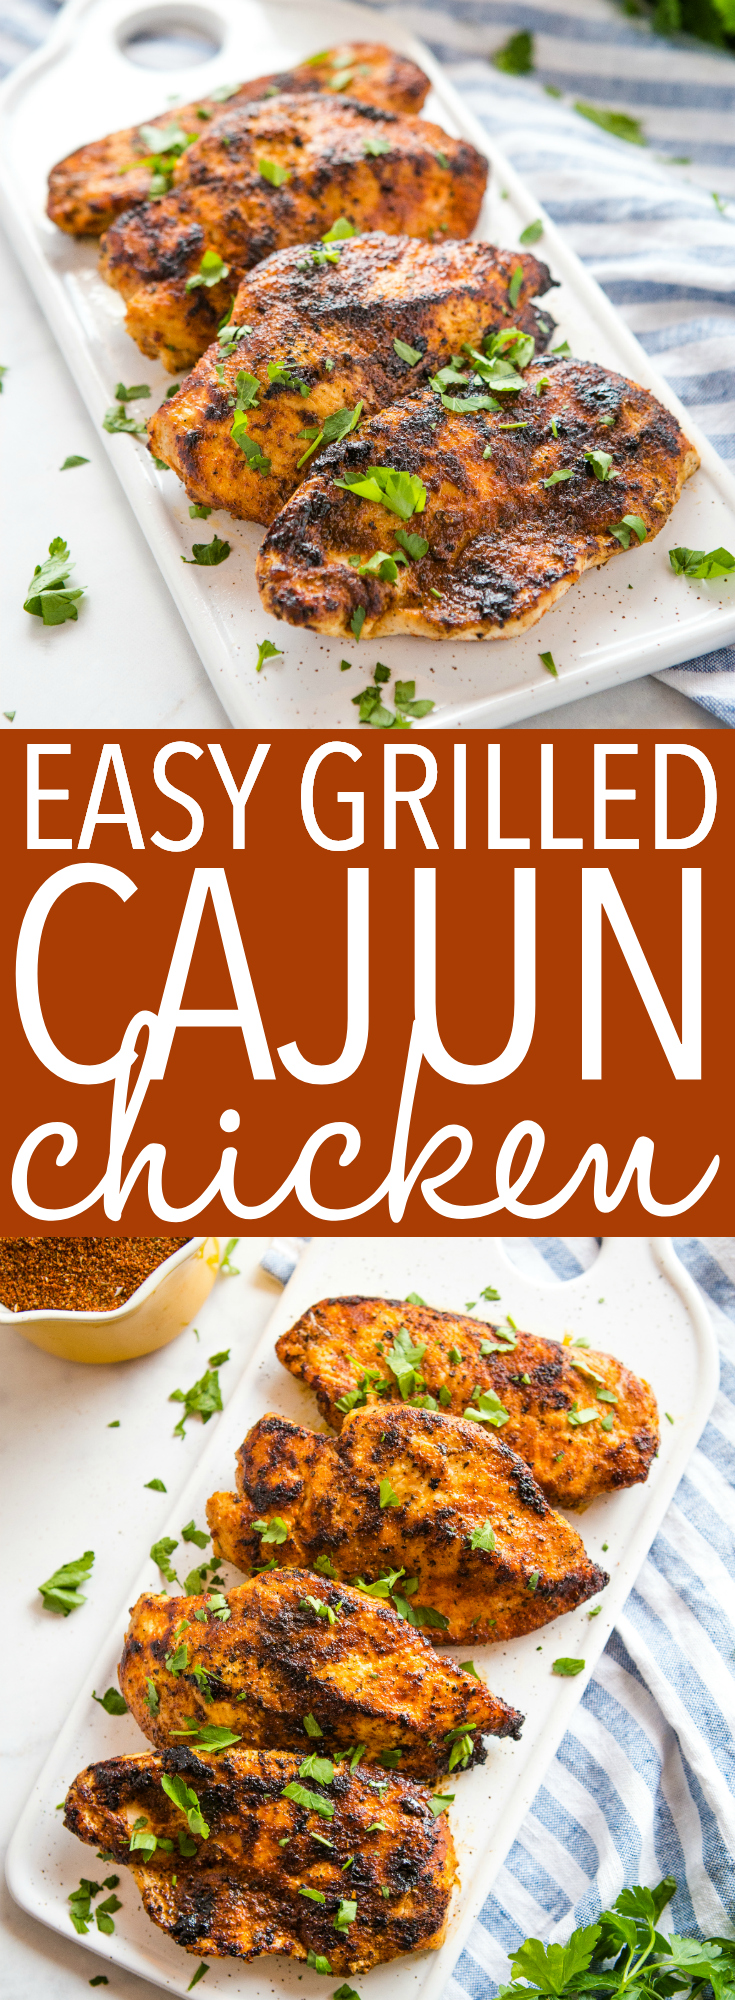 These Easy Cajun Grilled Chicken is the perfect healthy main dish recipe for grilling season! Juicy chicken breasts cooked to perfection in the BEST homemade cajun spice blend! Recipe from thebusybaker.ca! #chicken #chickenbreasts #grilled #healthy #easy #recipe #cajun #barbecue #bbq #summer #spring #healthy #lowcarb #keto via @busybakerblog